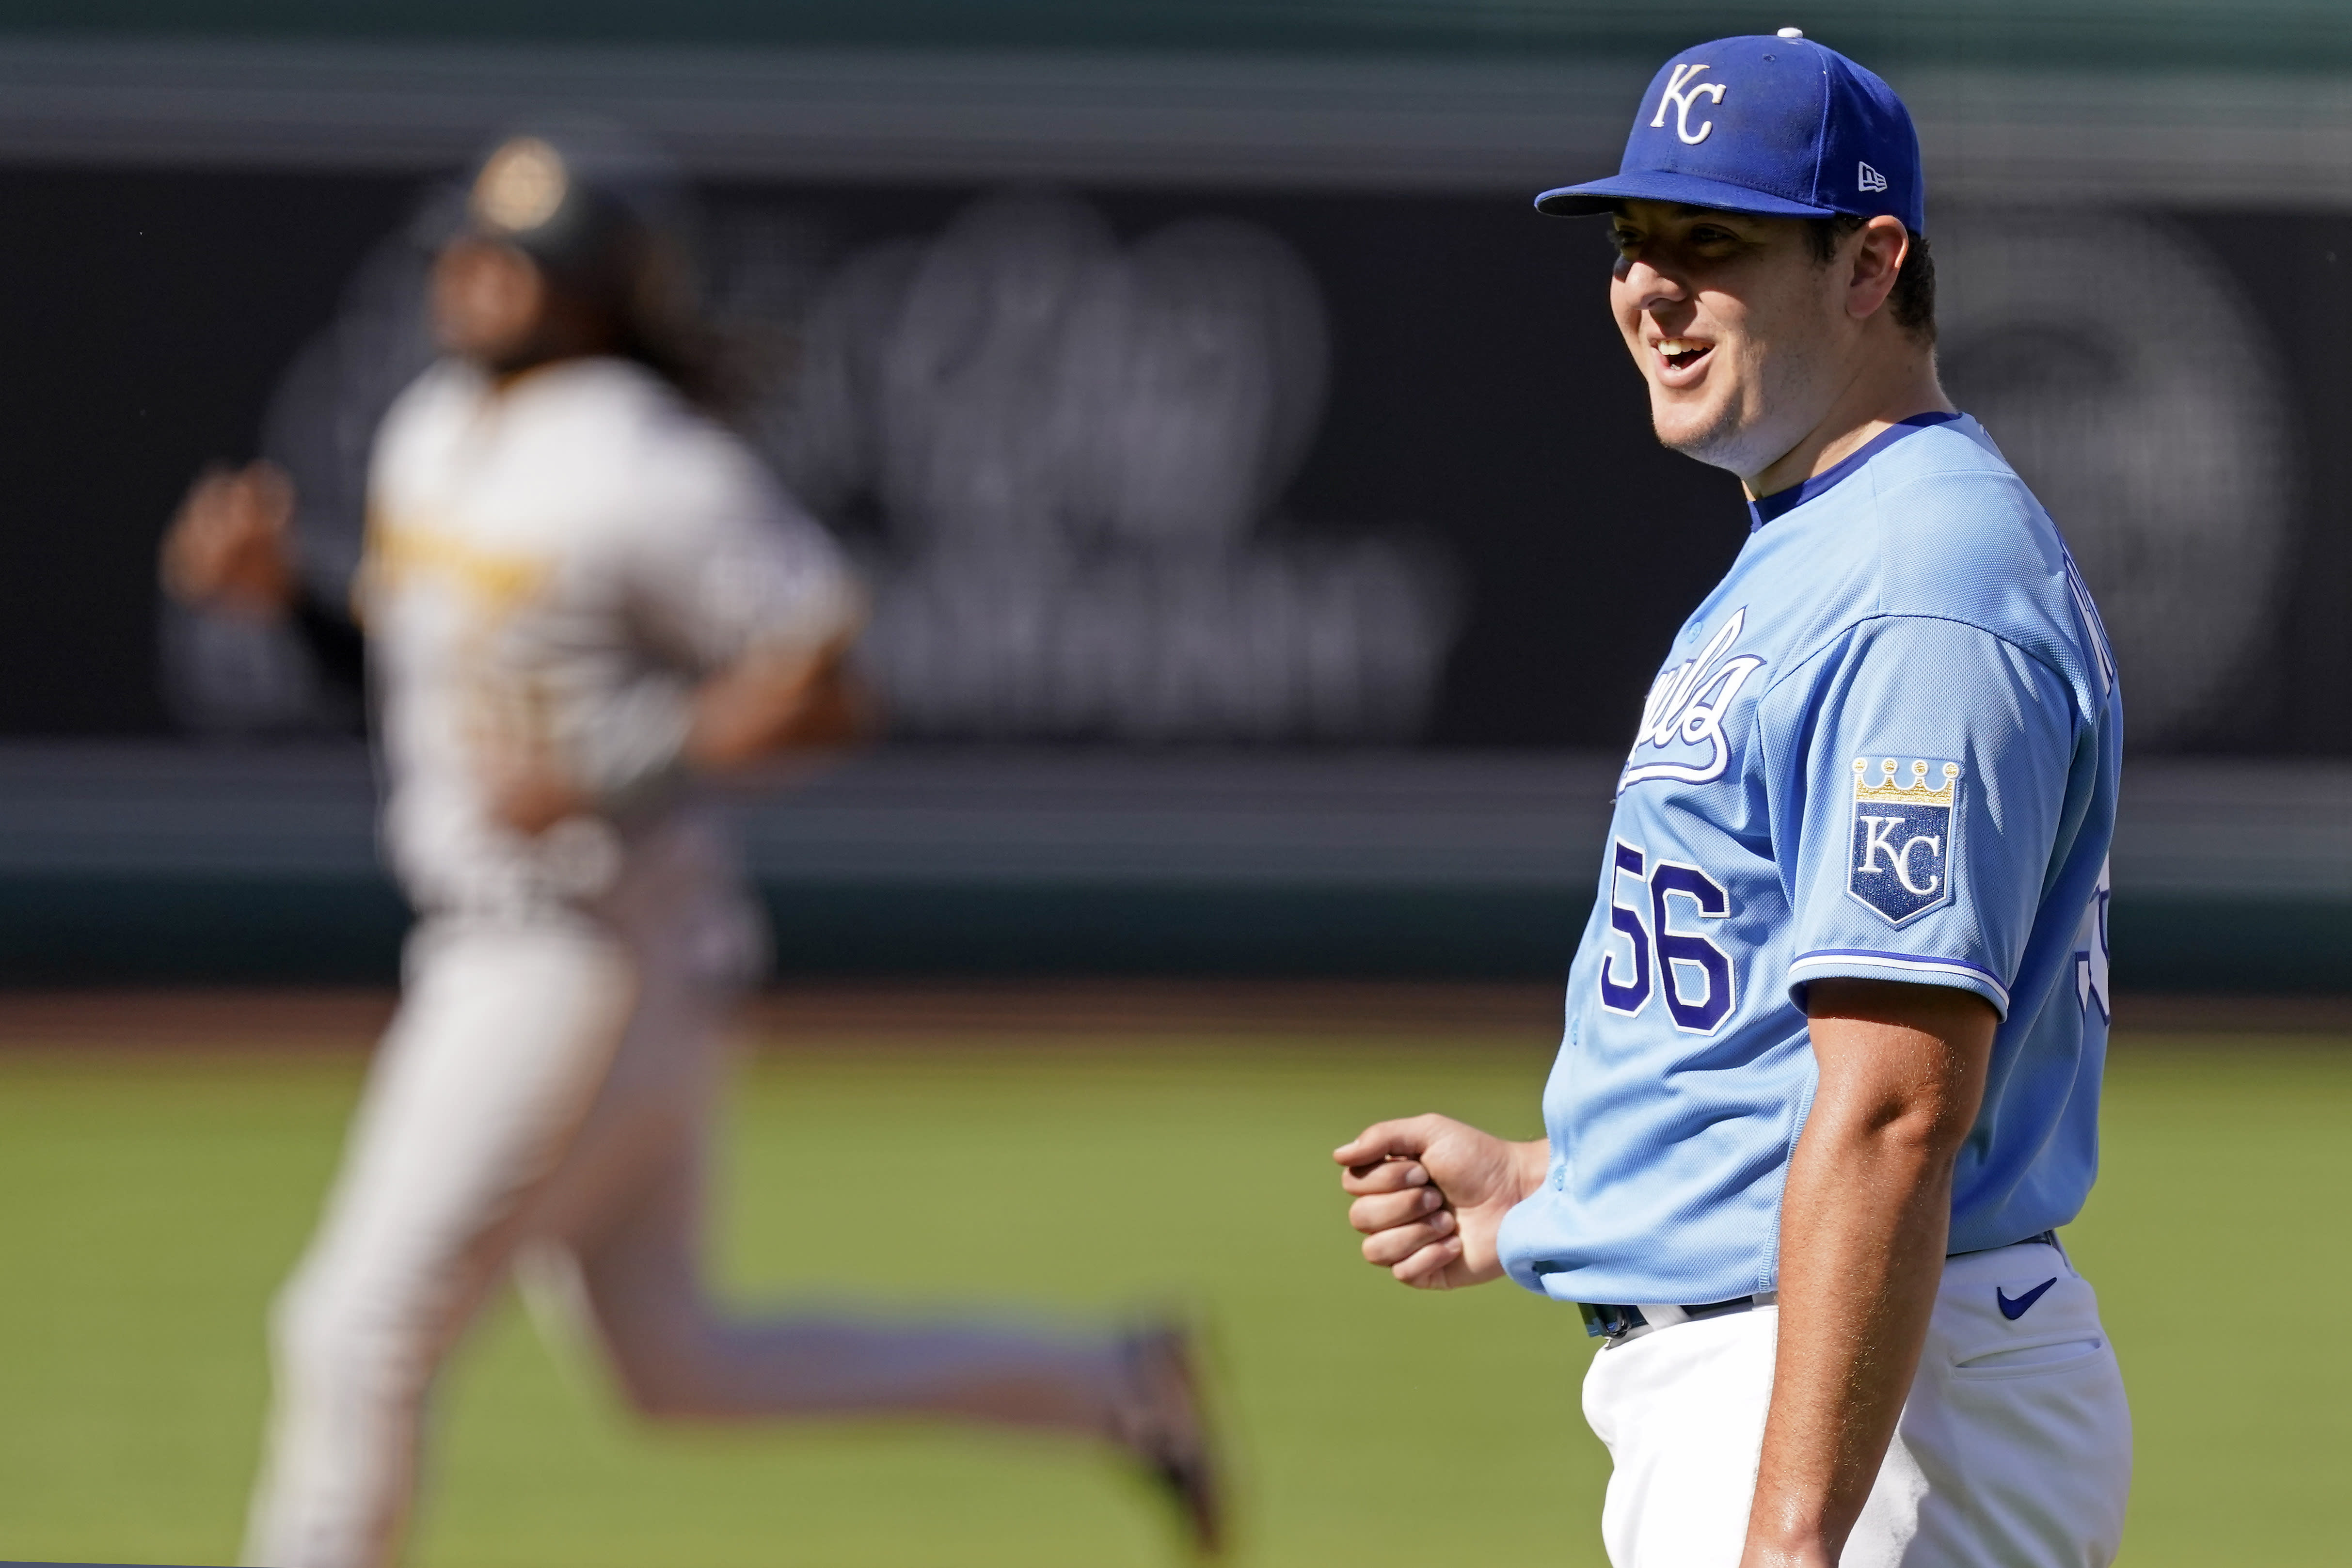 Kansas City Royals starting pitcher Brad Keller reacts after a baseball game against the Pittsburgh Pirates Sunday, Sept. 13, 2020, in Kansas City, Mo. Keller pitched a complete game and shut out the Pirates. (AP Photo/Charlie Riedel)